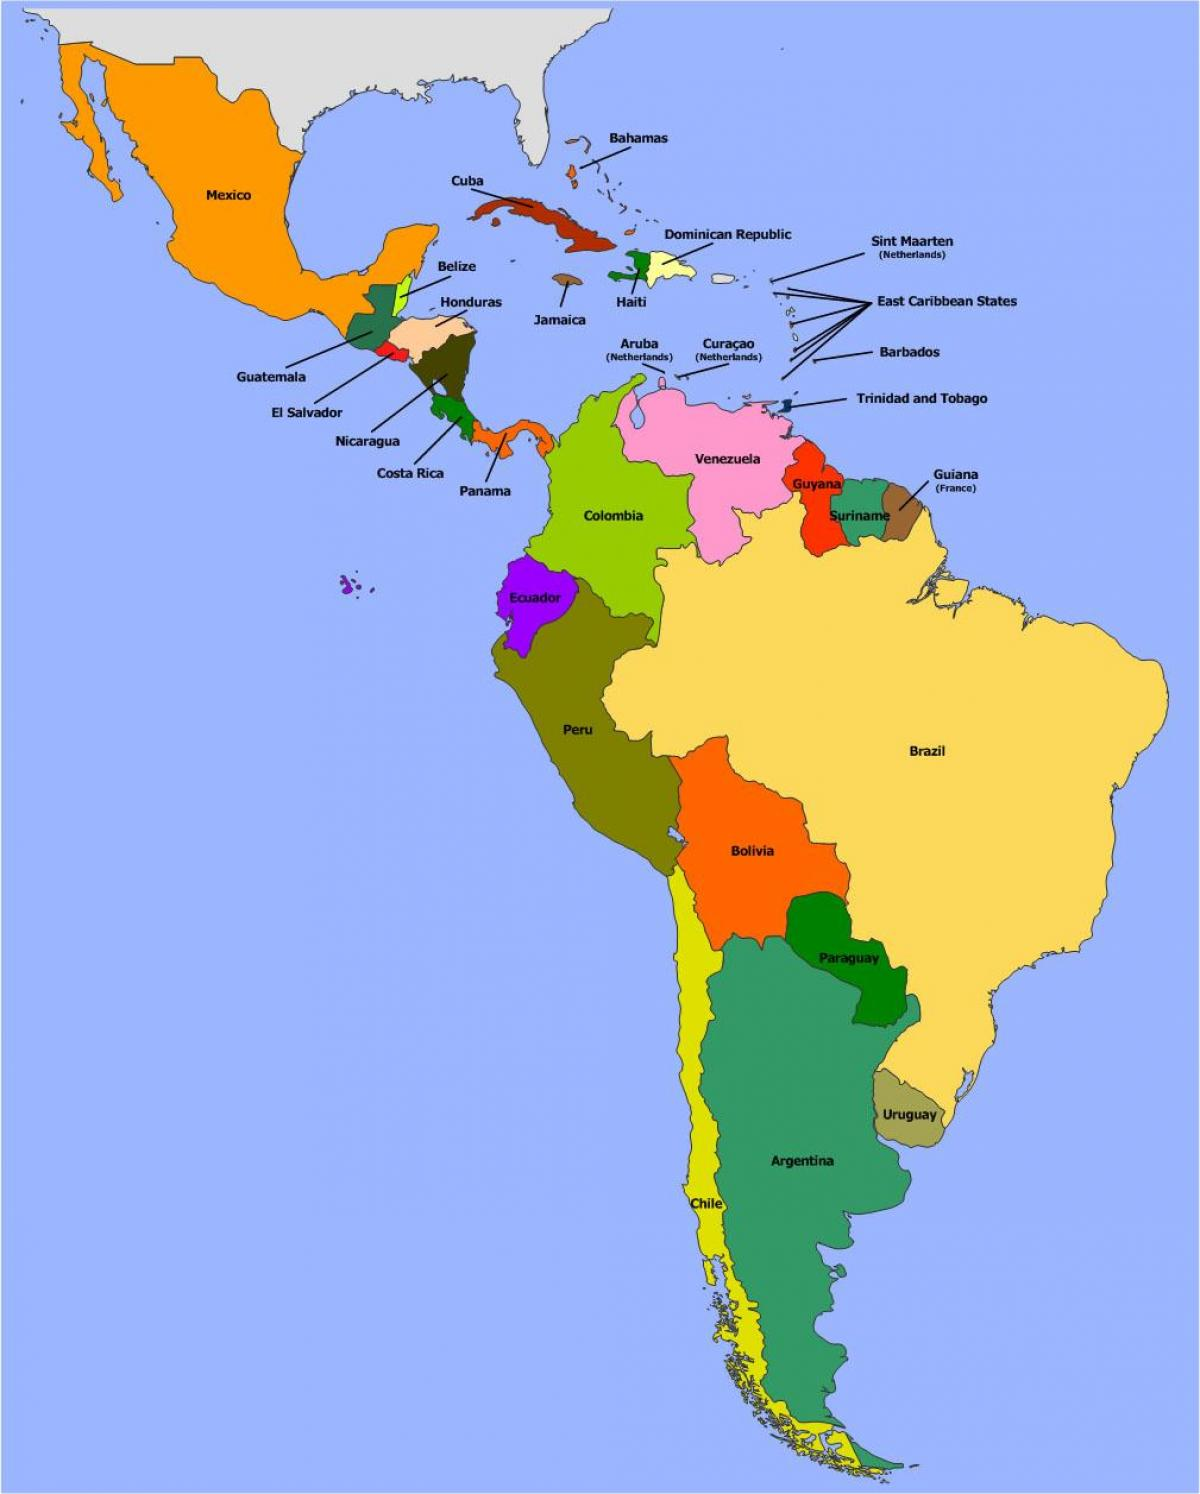 Map of Belize south america